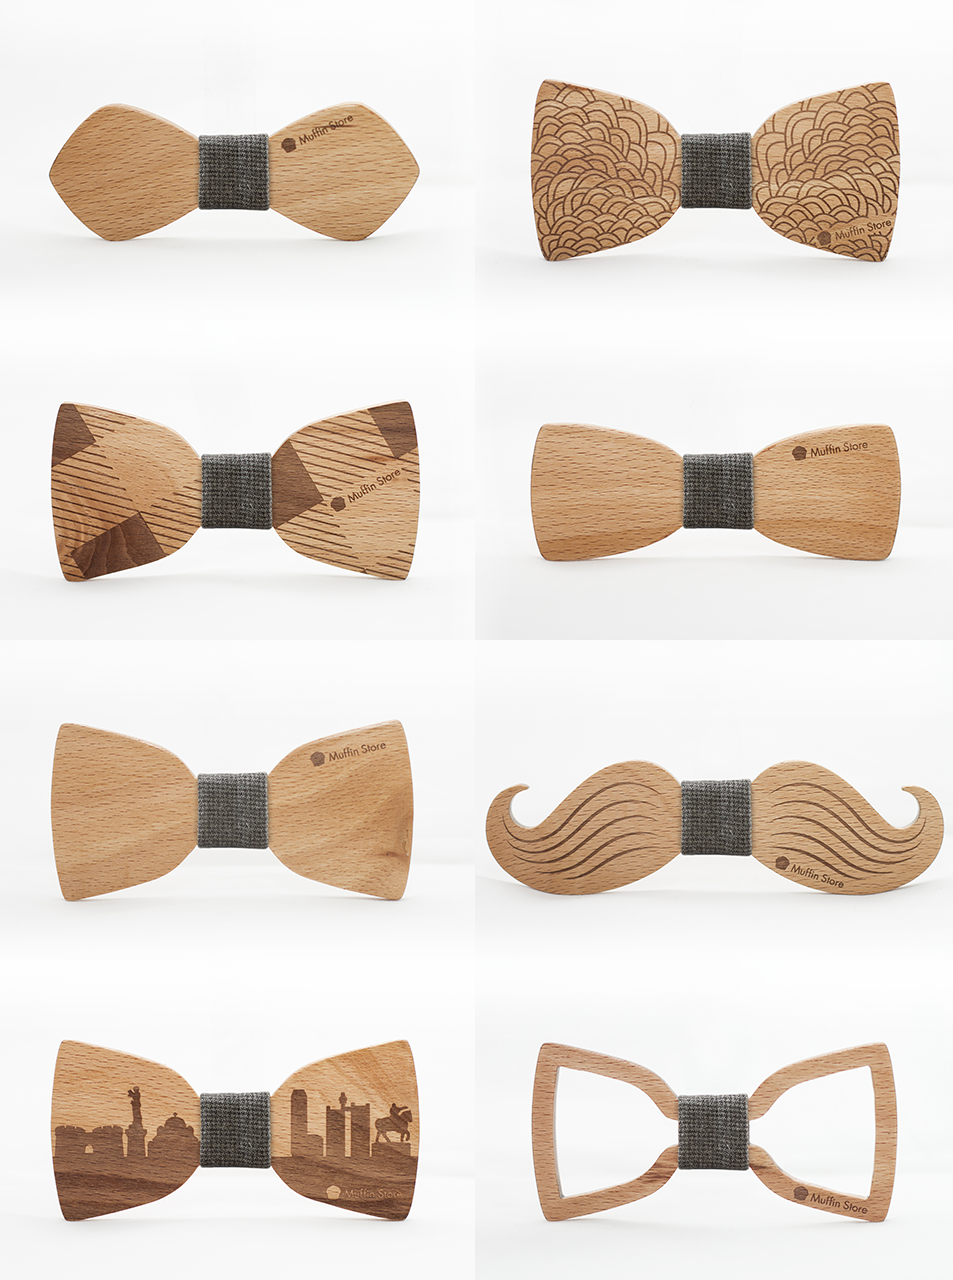 b6868f1b9467 Wooden bow ties by Muffin Studio #bowties #wooden #design #handcrafted # moustaches #cityscape #belgrade #pattern #style #wood #product #bow tie